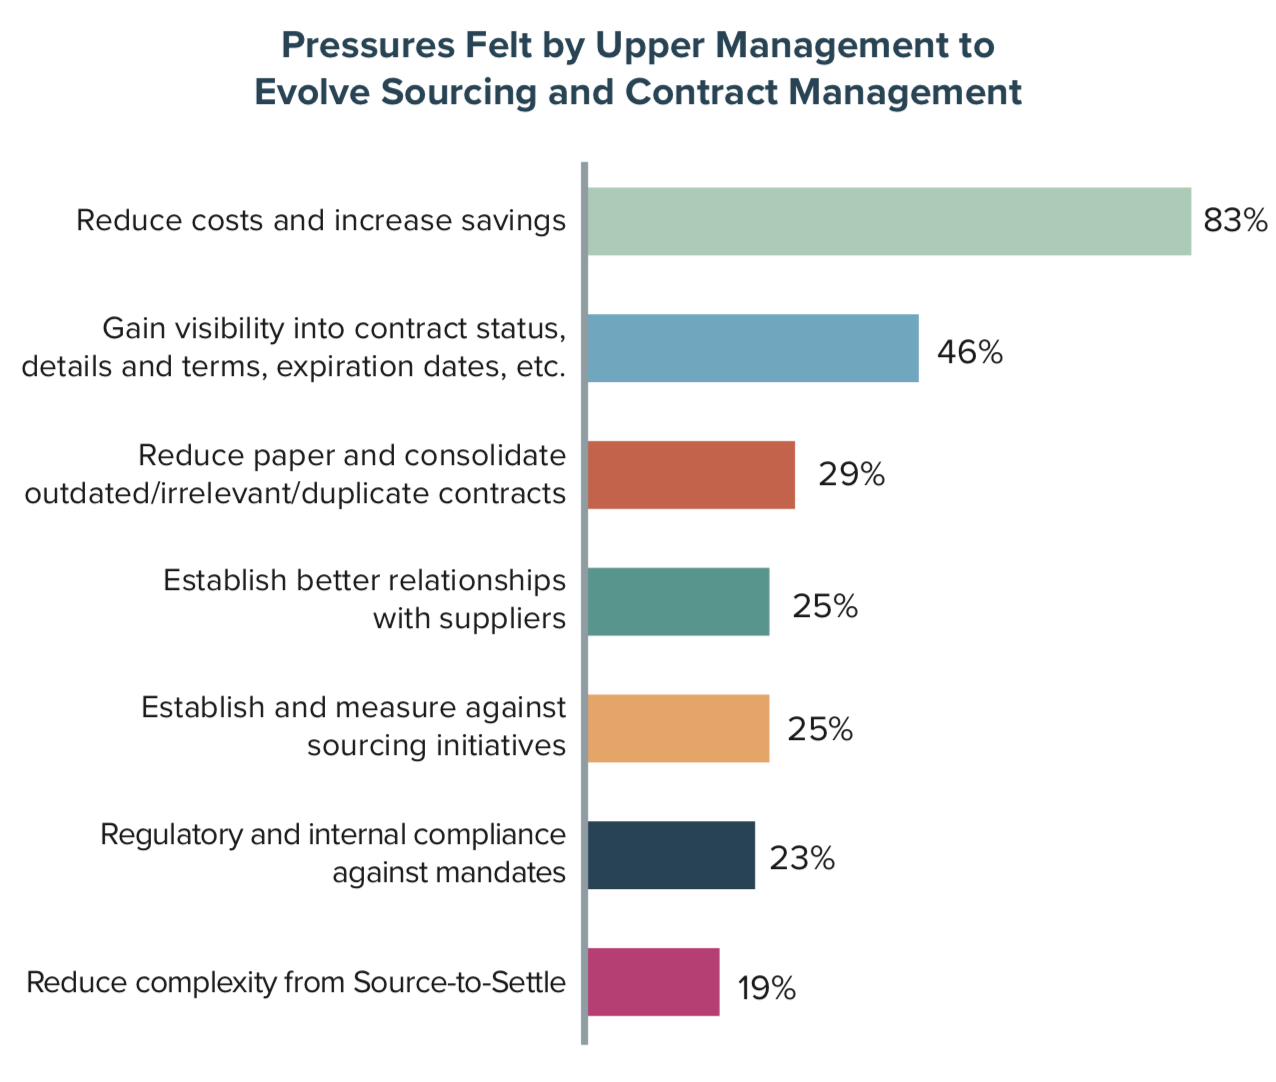 Pressures Felt by Upper Management to Evolve Sourcing and Contract Management